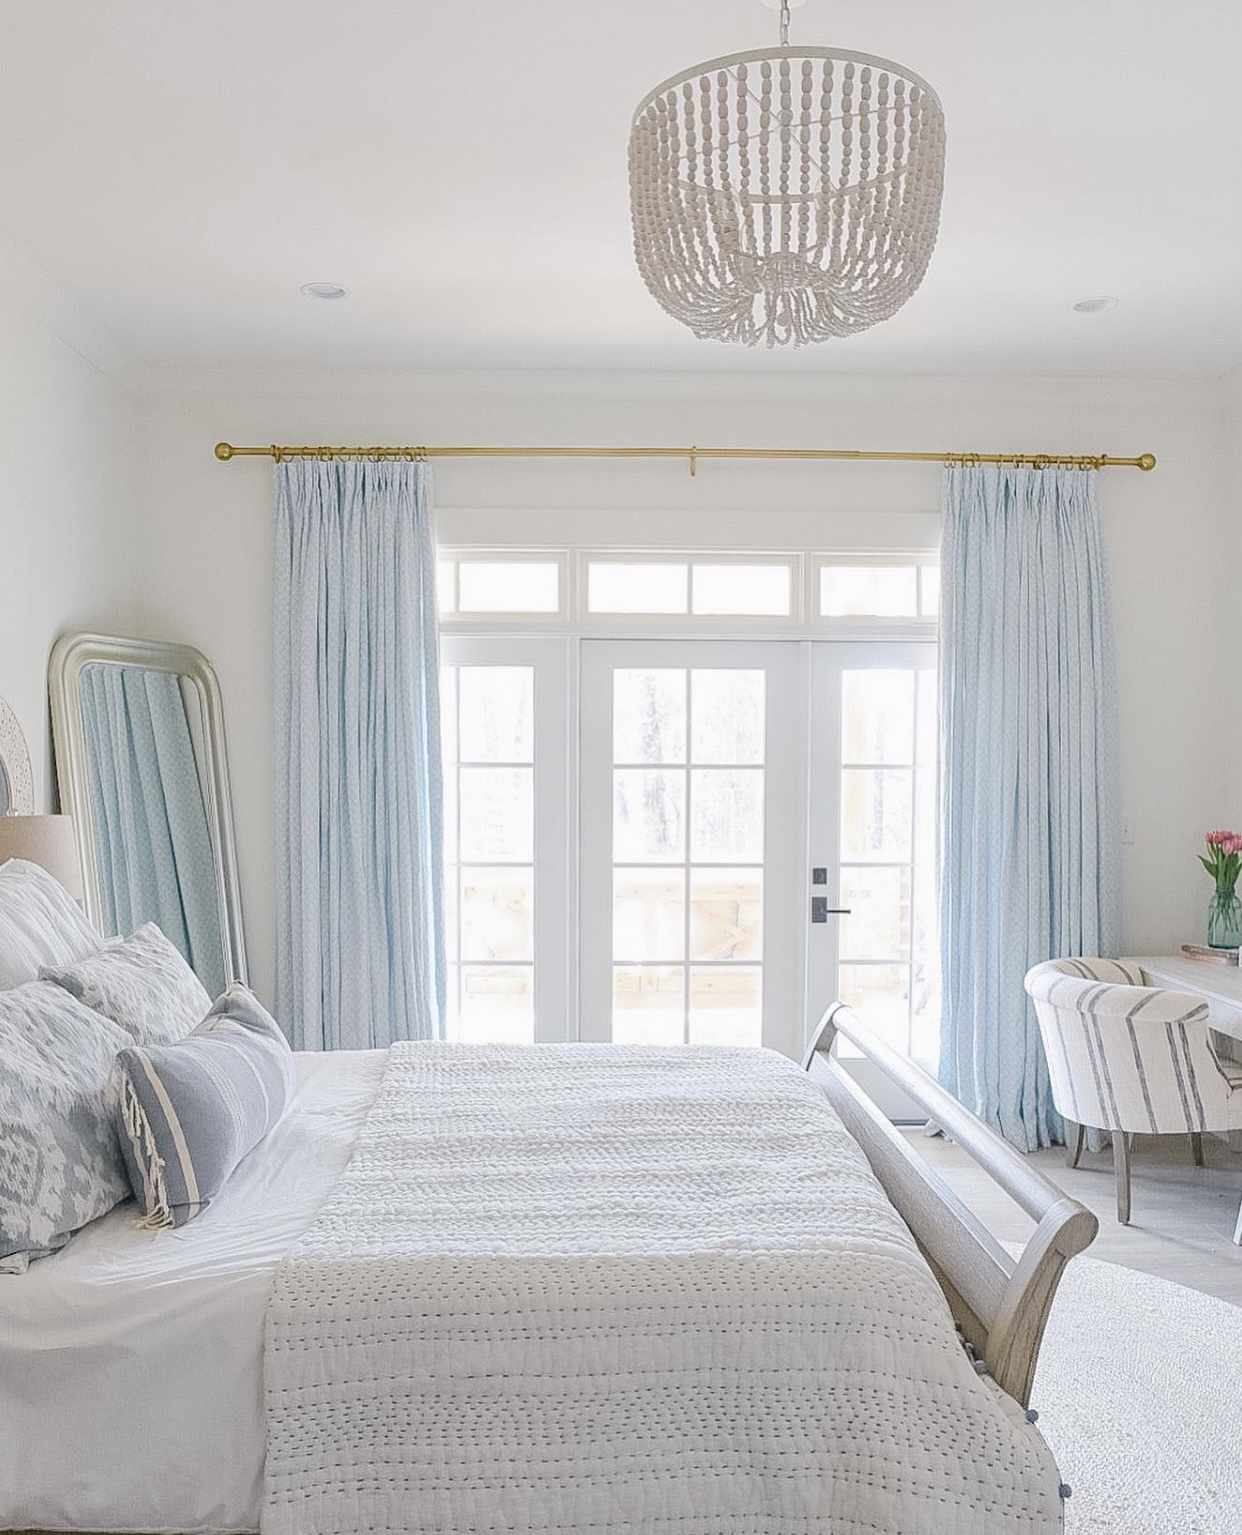 white bedroom with blue drapes